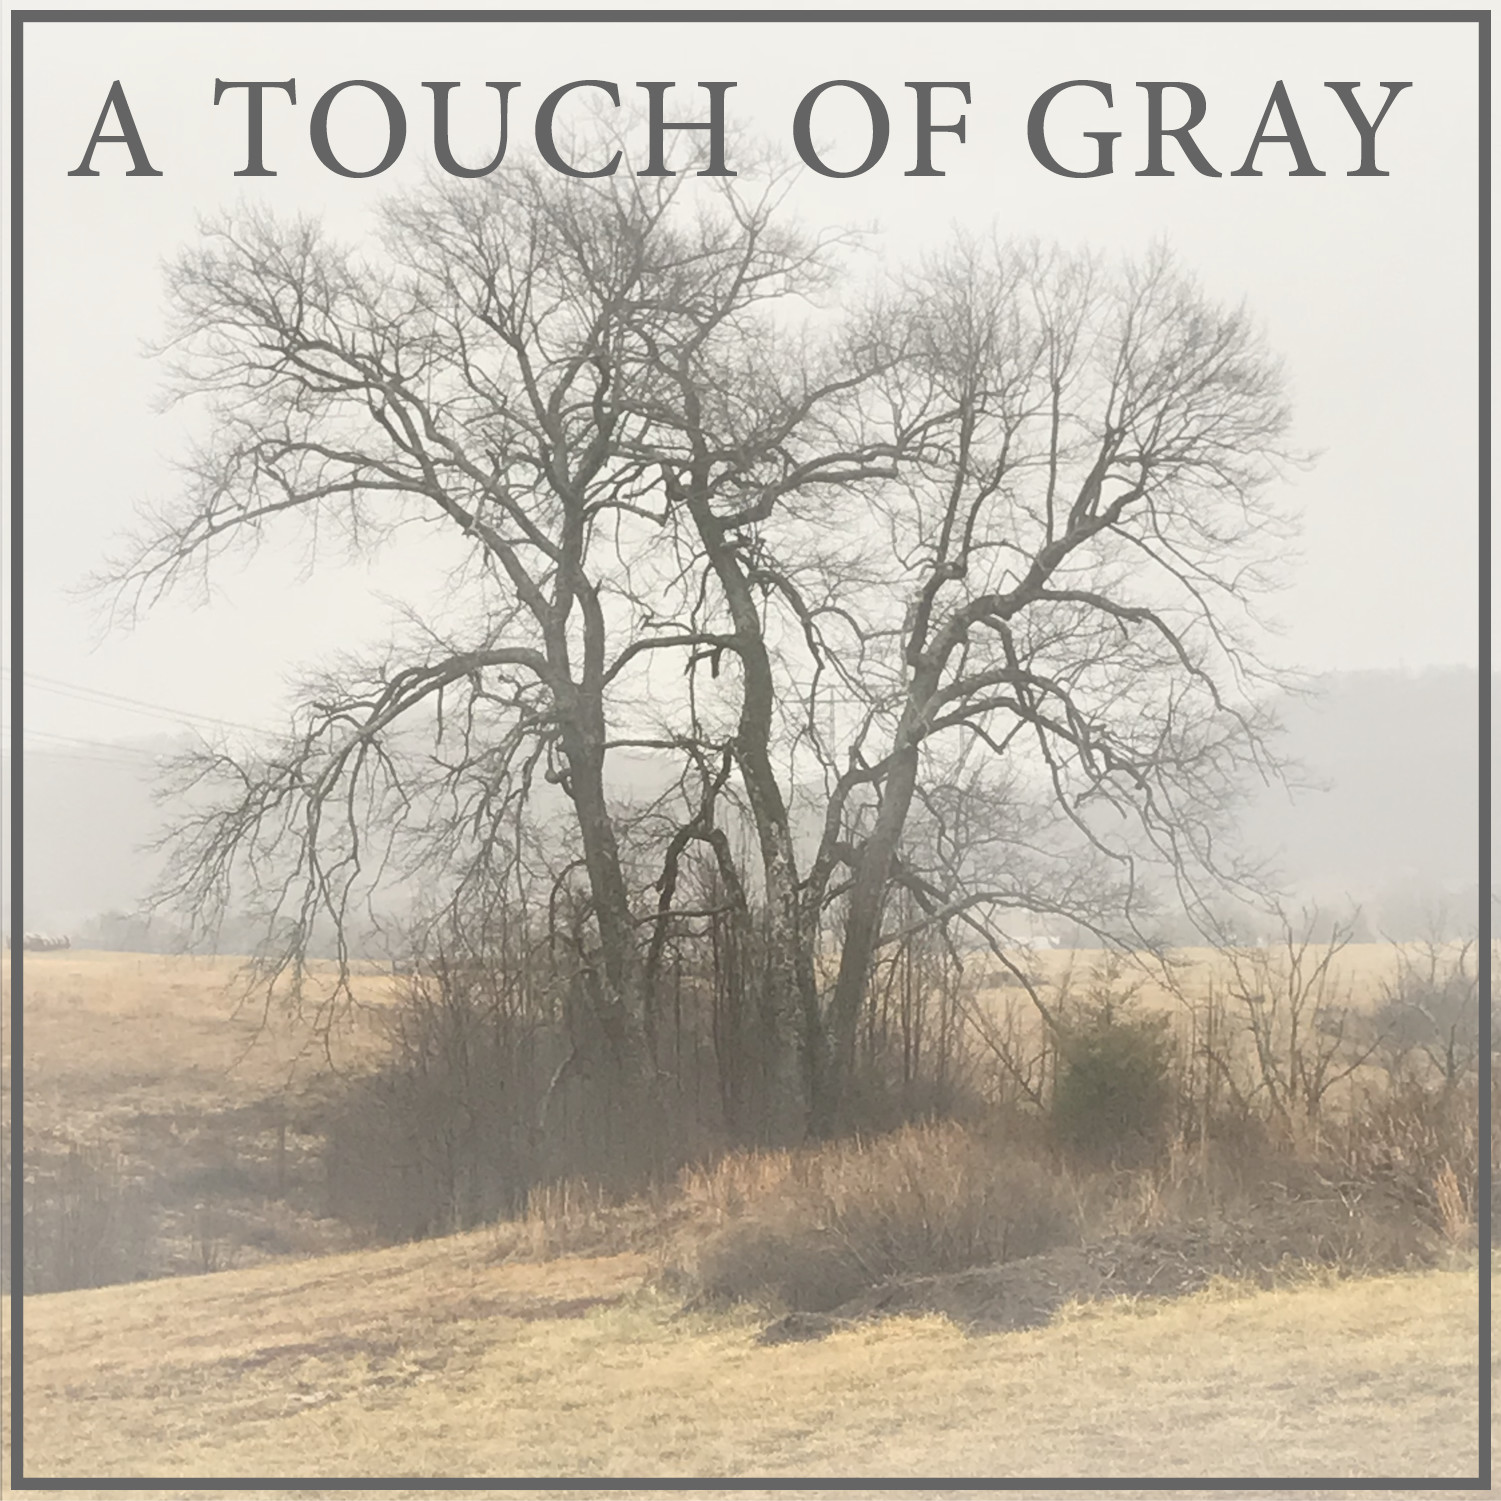 A Touch of Gray - Episode 26- Halloween in the Miocene